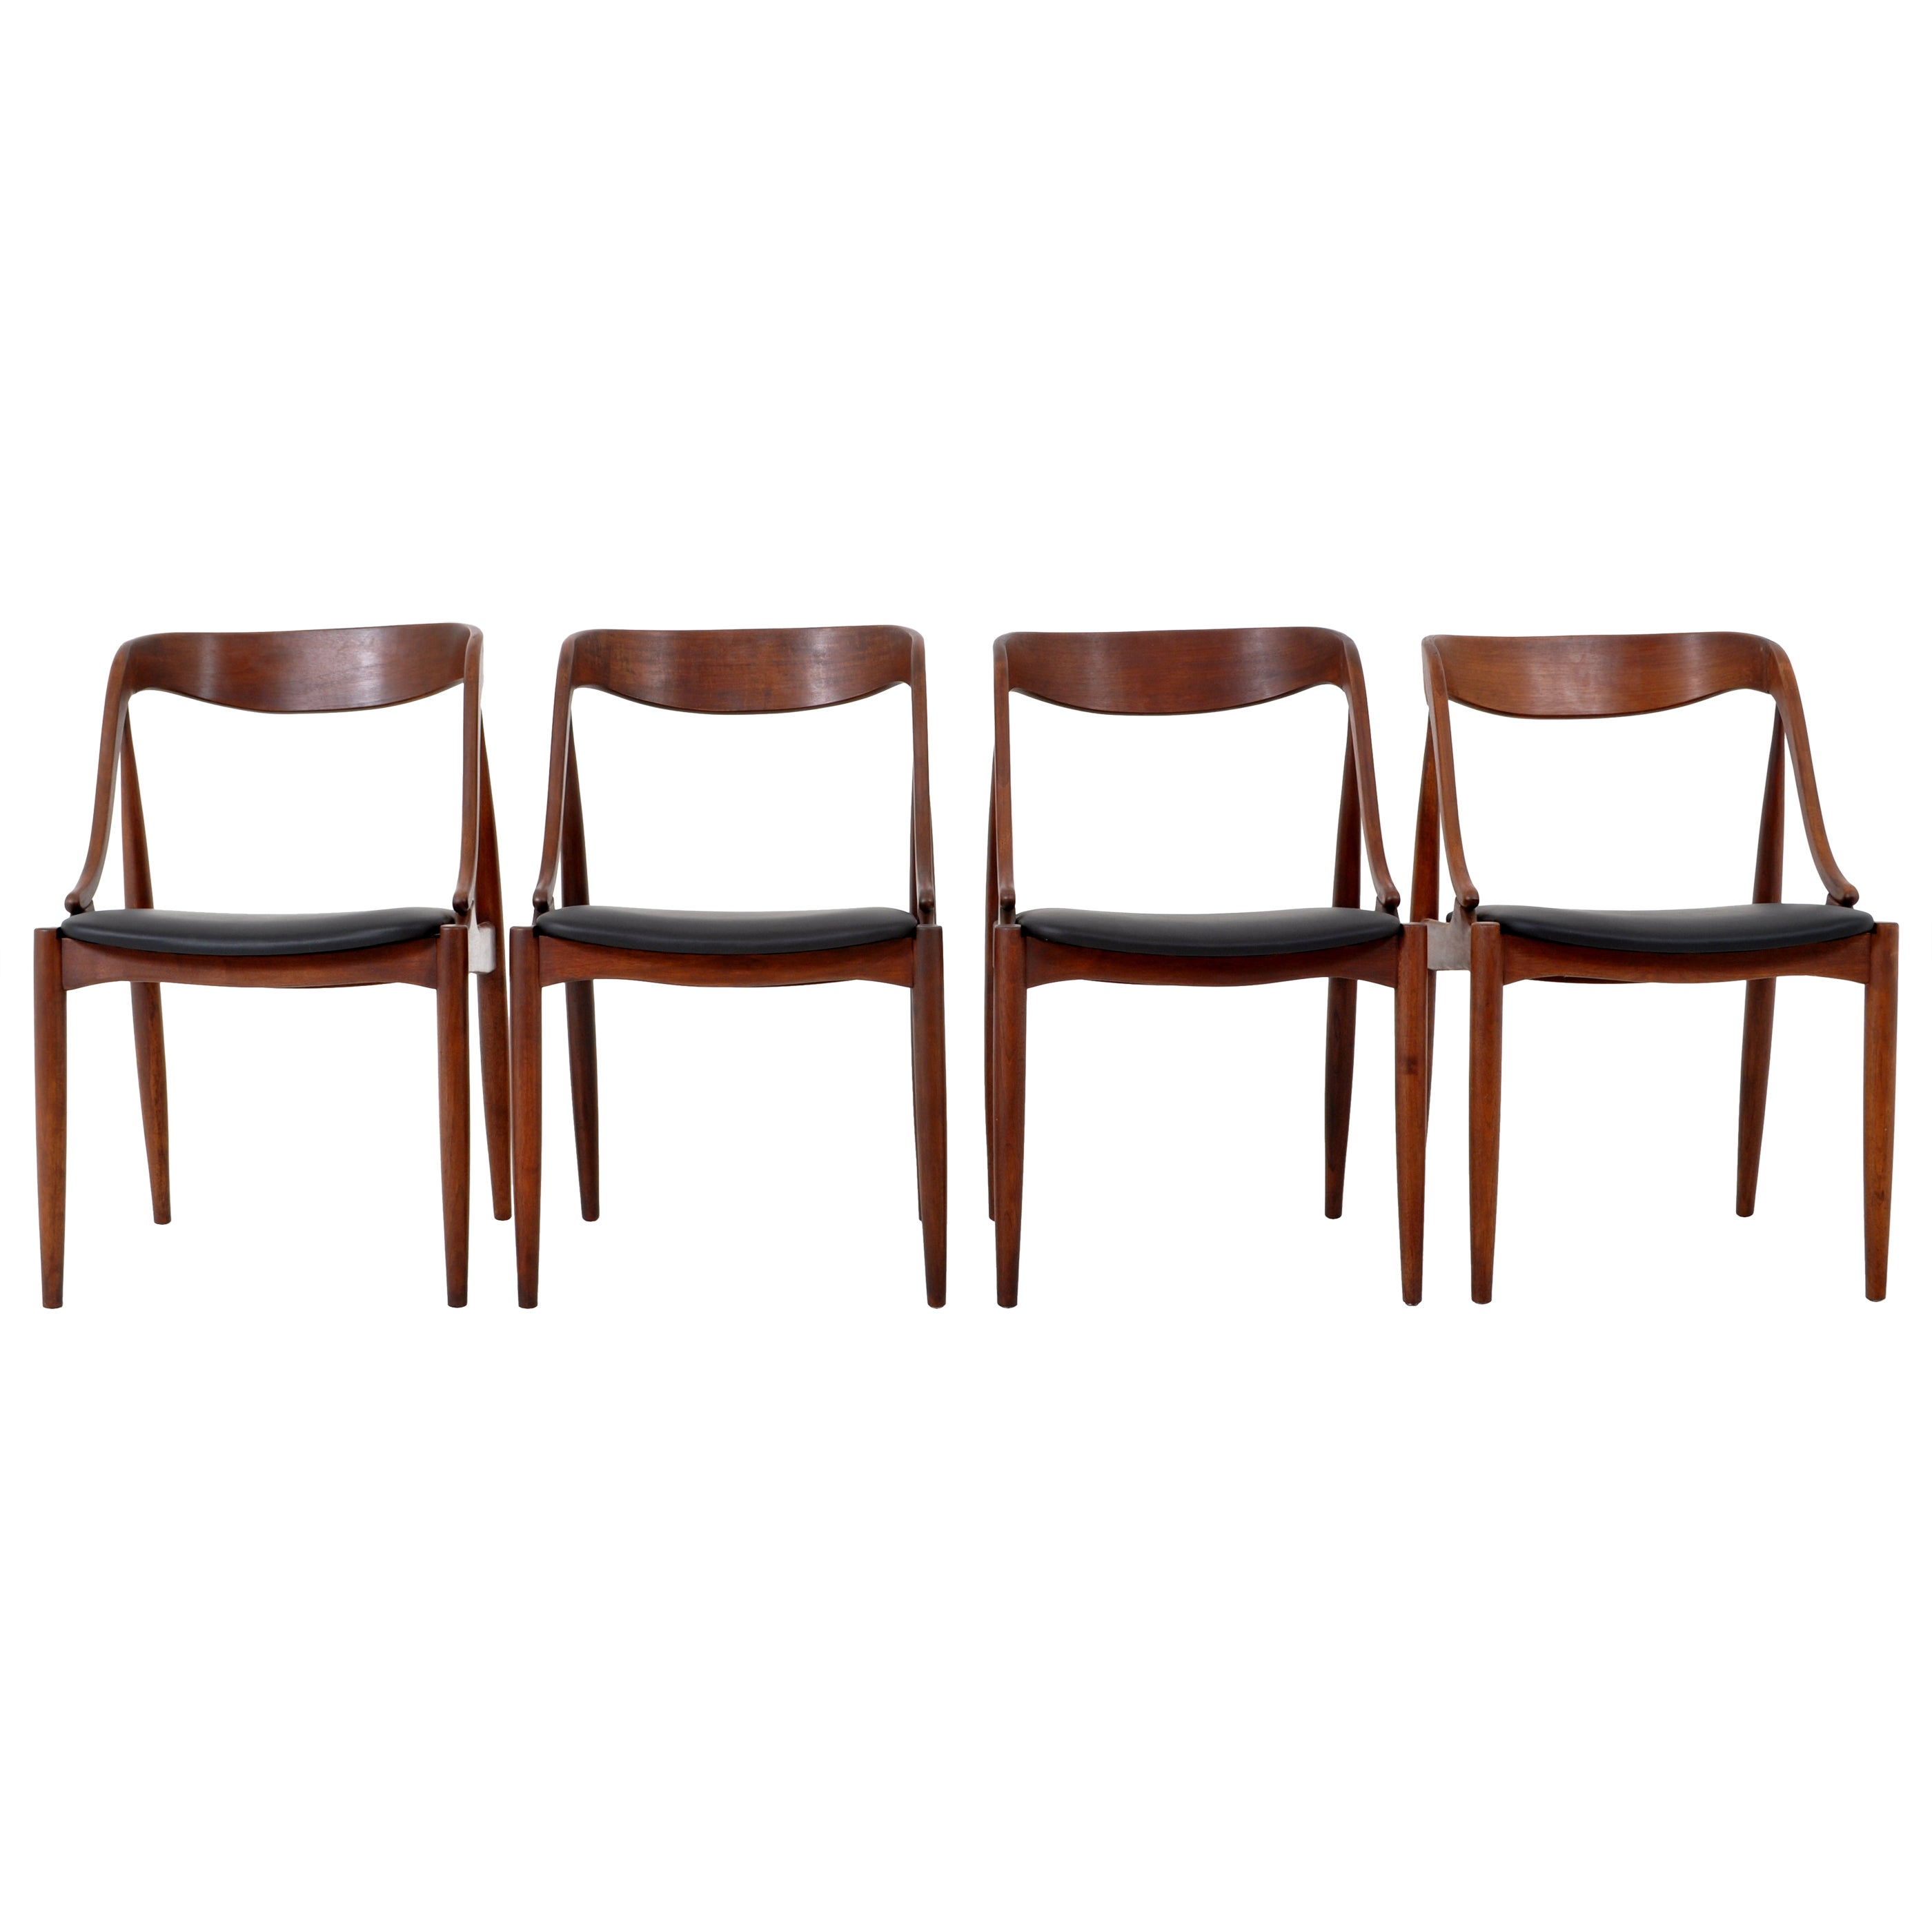 Set of 4 Mid-Century Modern Danish Teak & Leather Dining Chairs, 1960s